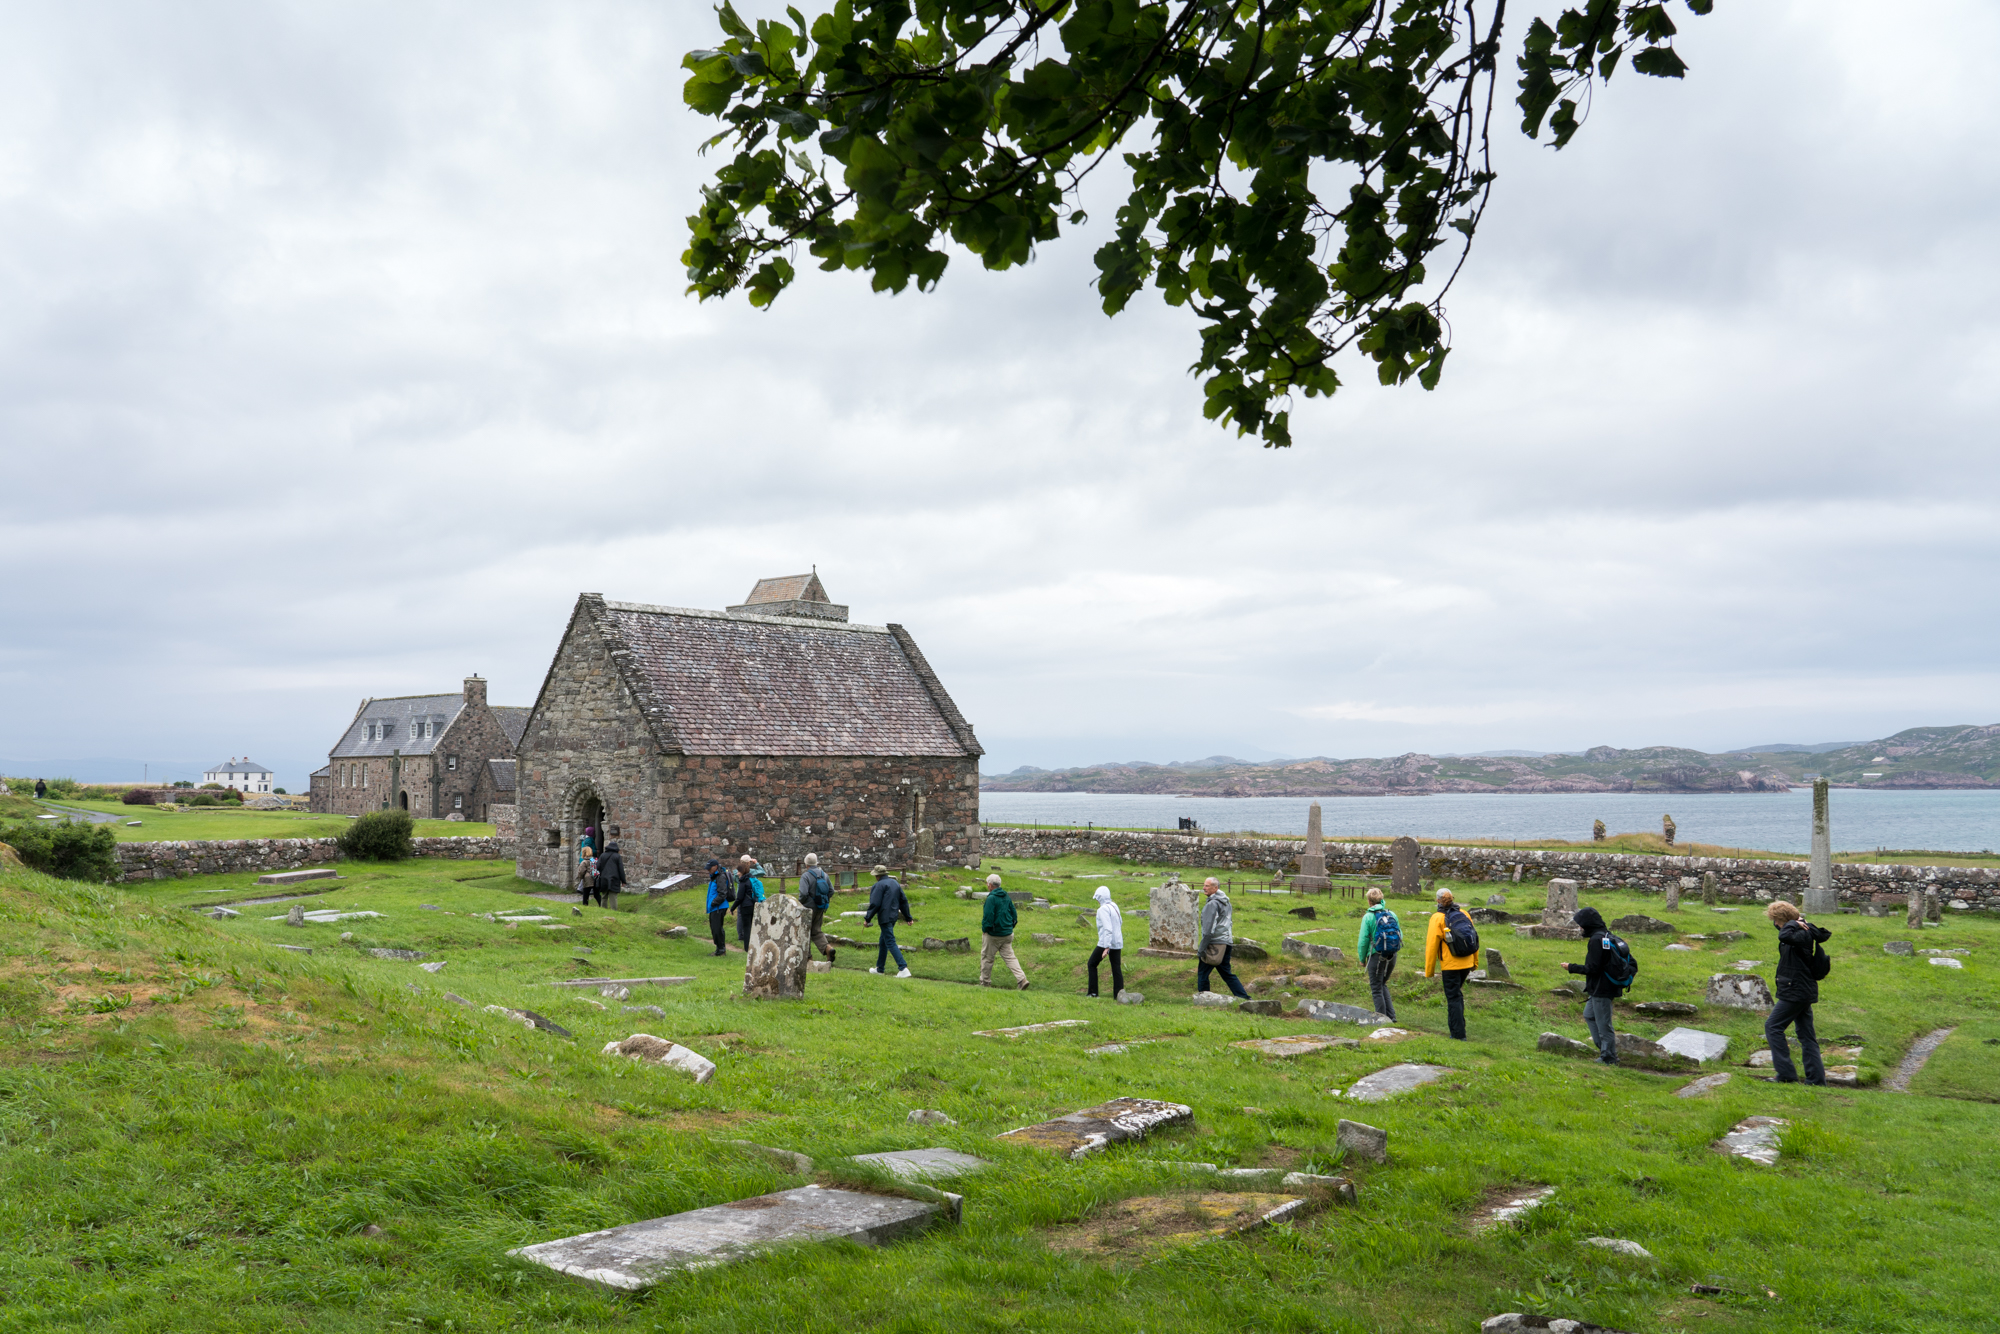 Guests walk through the cemetery on Iona, a place steeped in religious history.